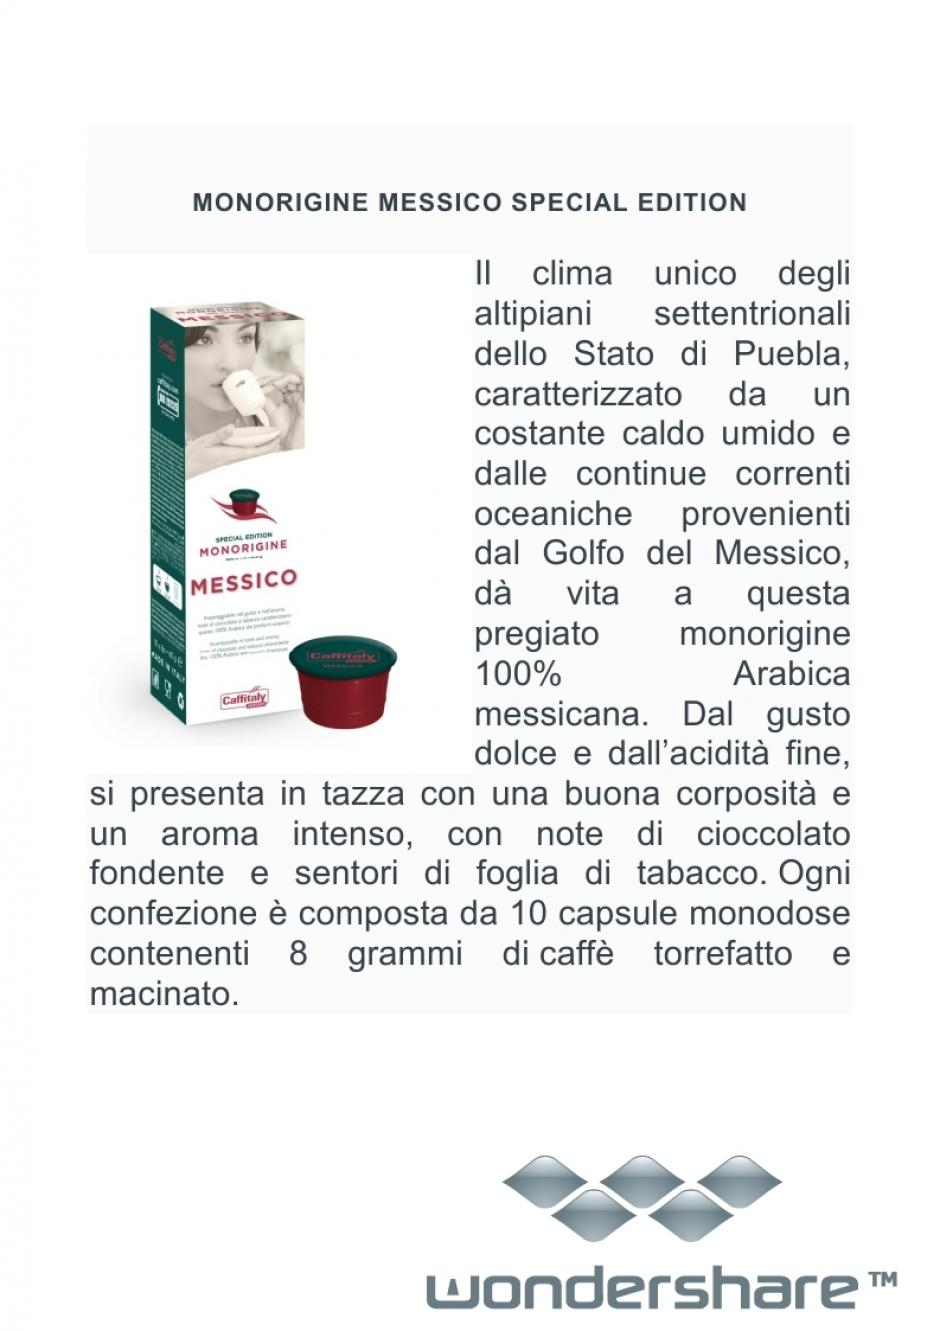 MONORIGINE MESSICO 100% ARABICA